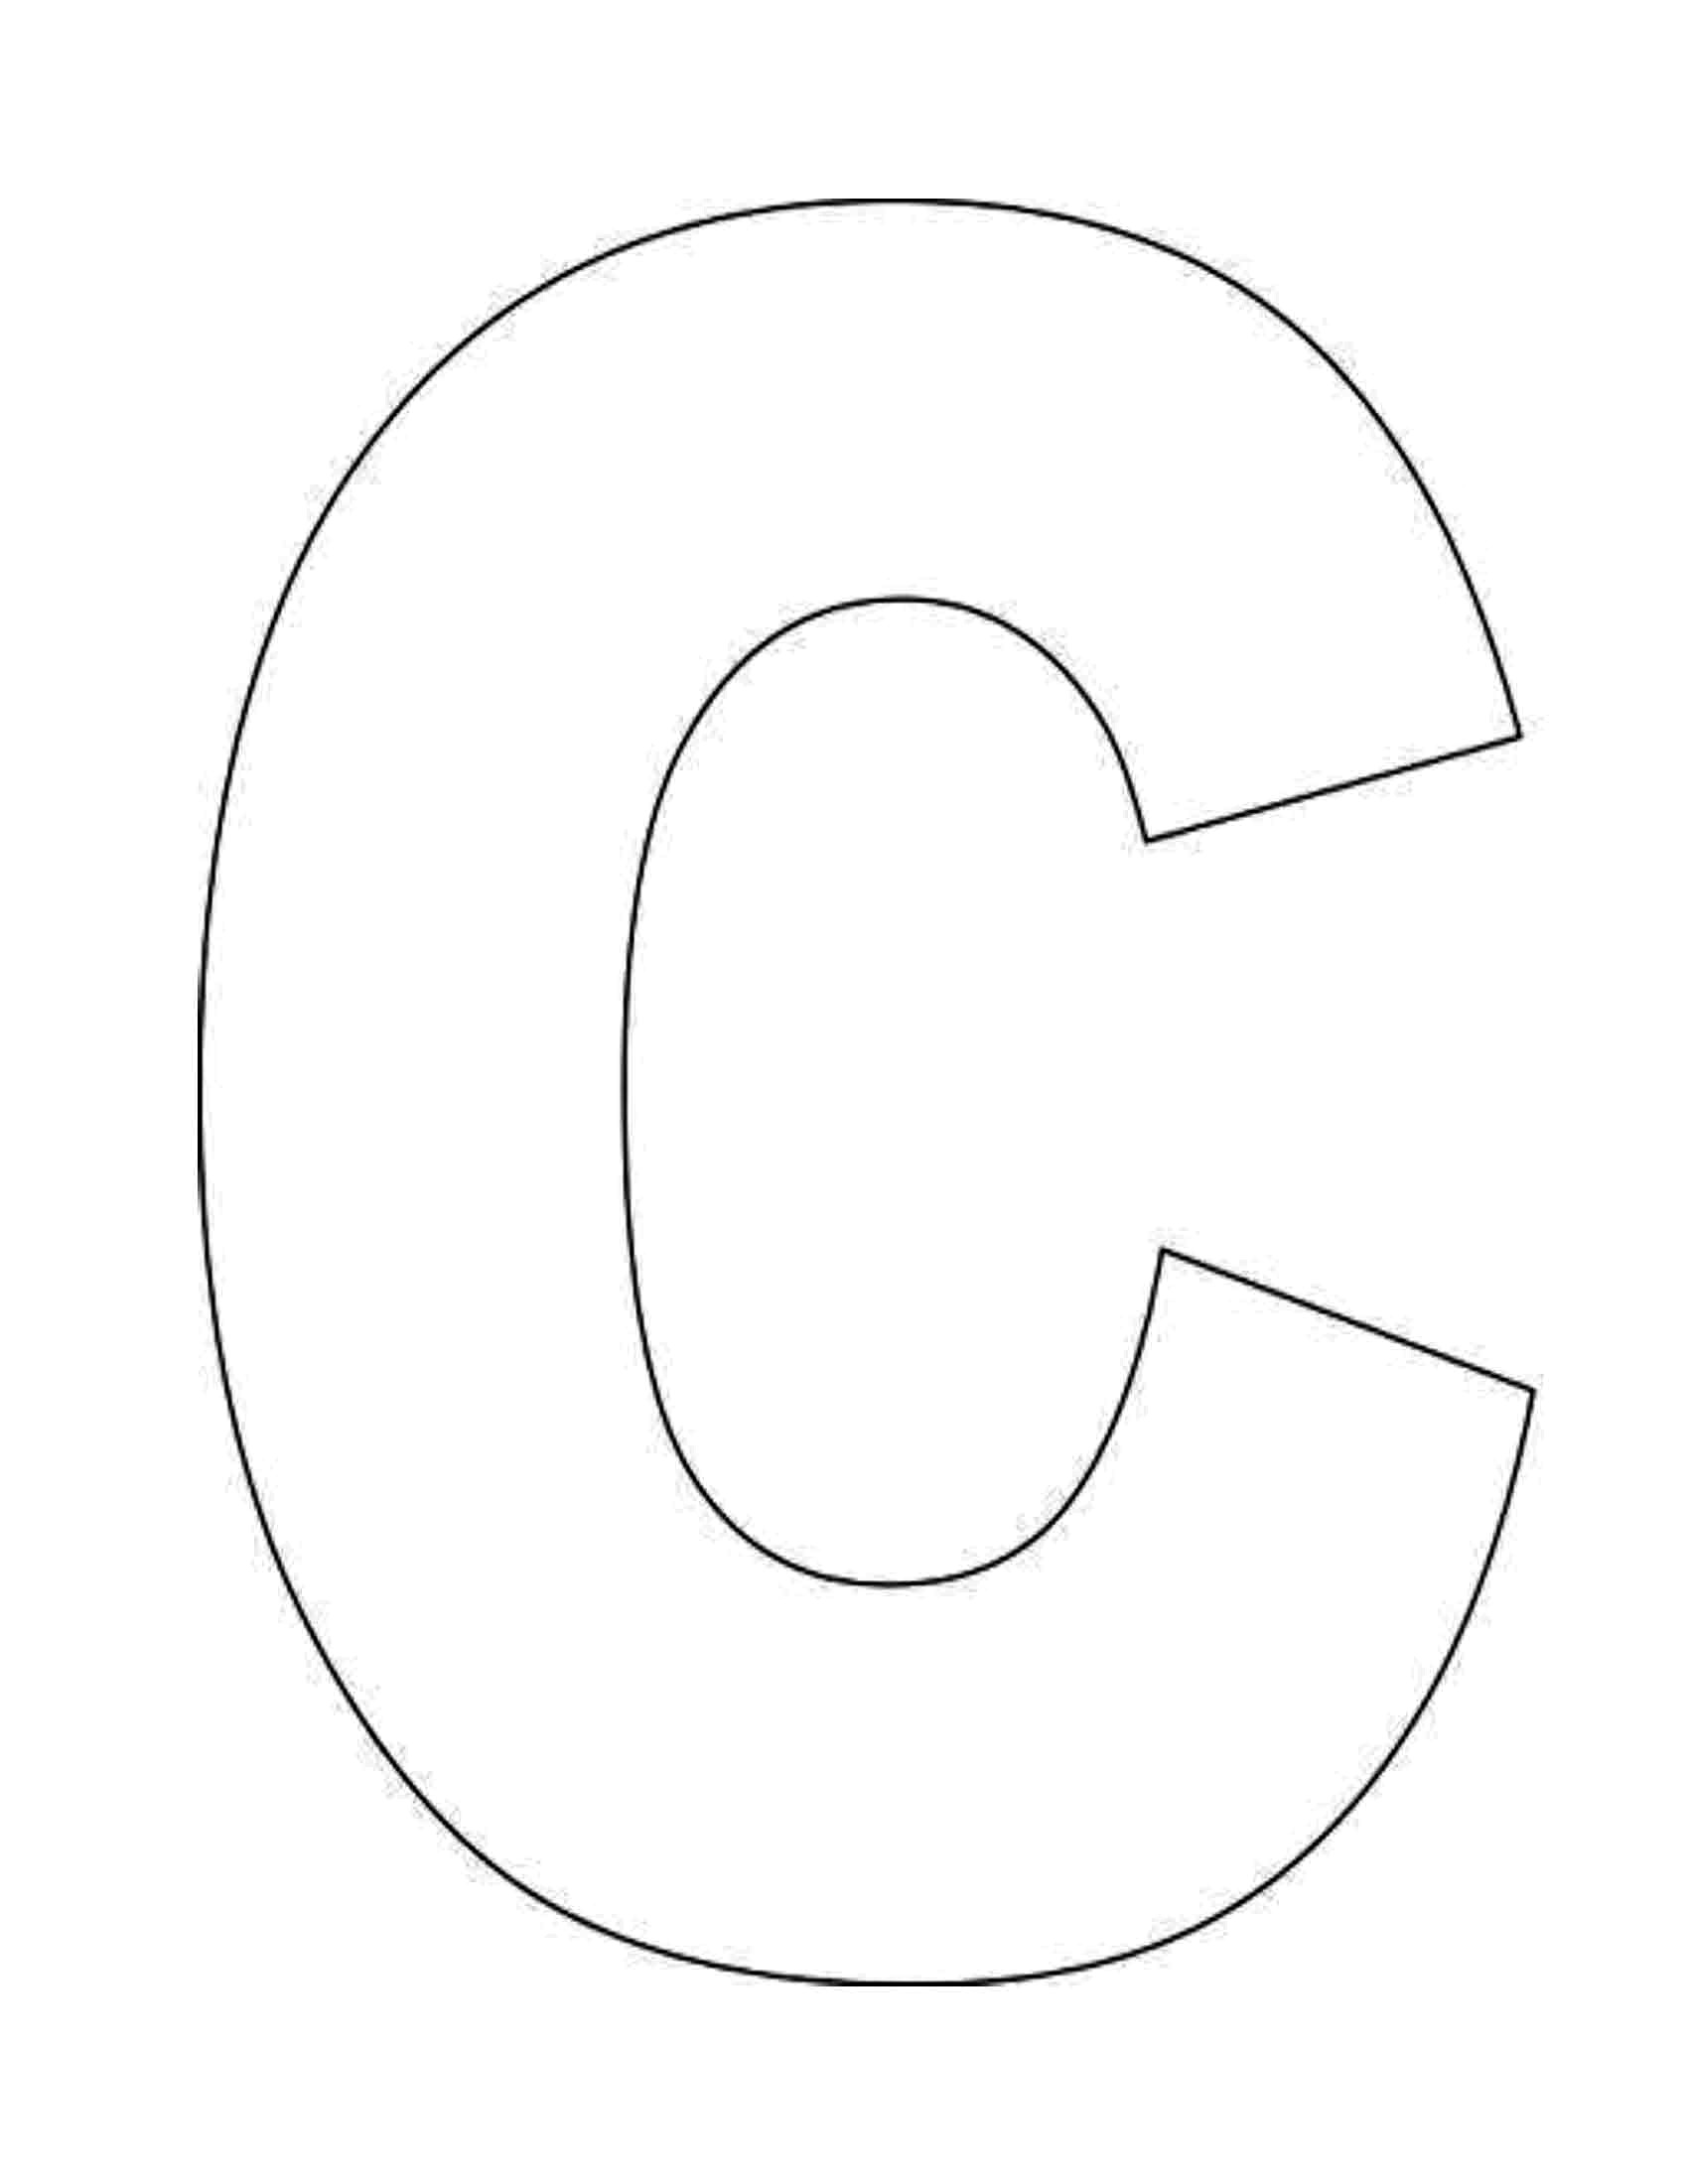 c coloring page c cow coloring pages coloring home page c coloring